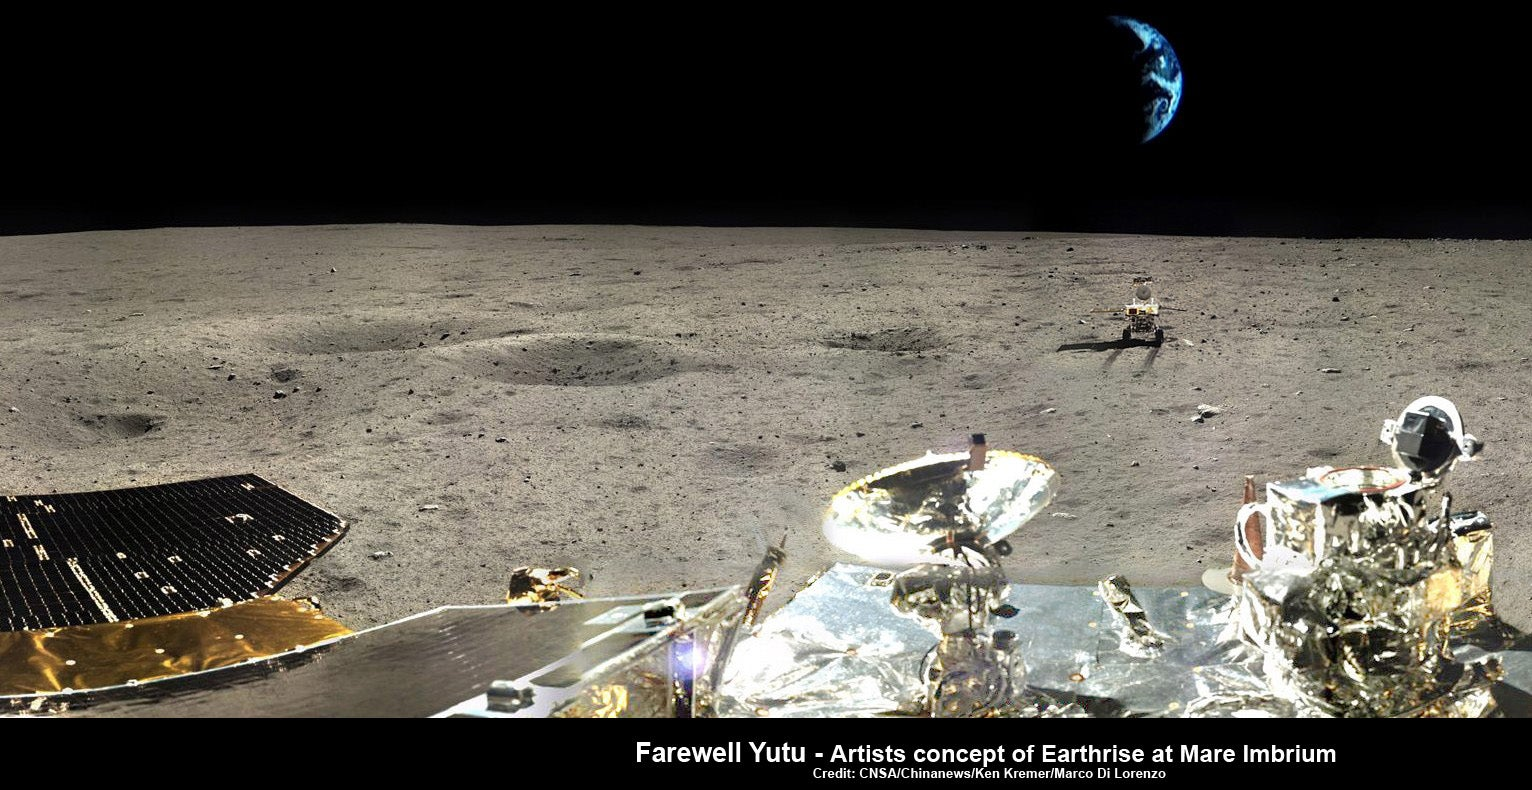 China's Jade Rabbit Moon Rover Has Been Lost